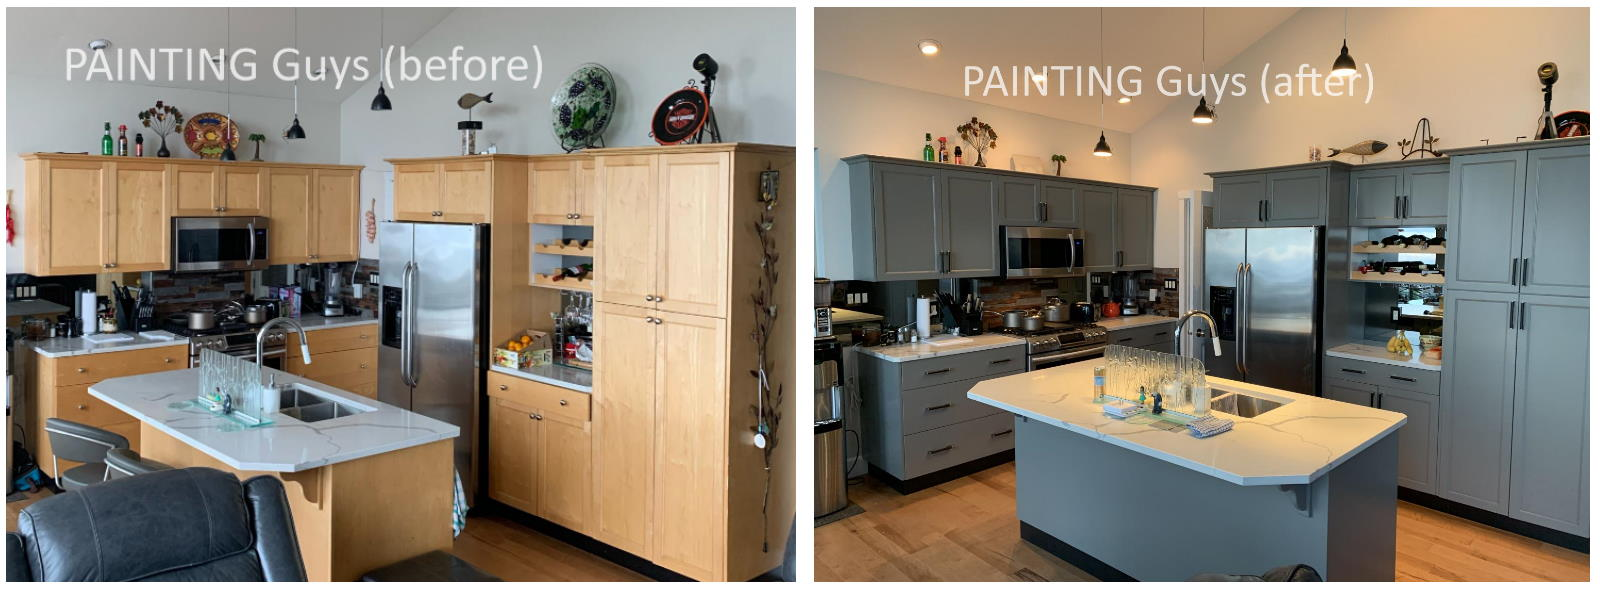 Kitchen Cabinet Painting Victoria Duncan Nanaimo Qualicum Parksville